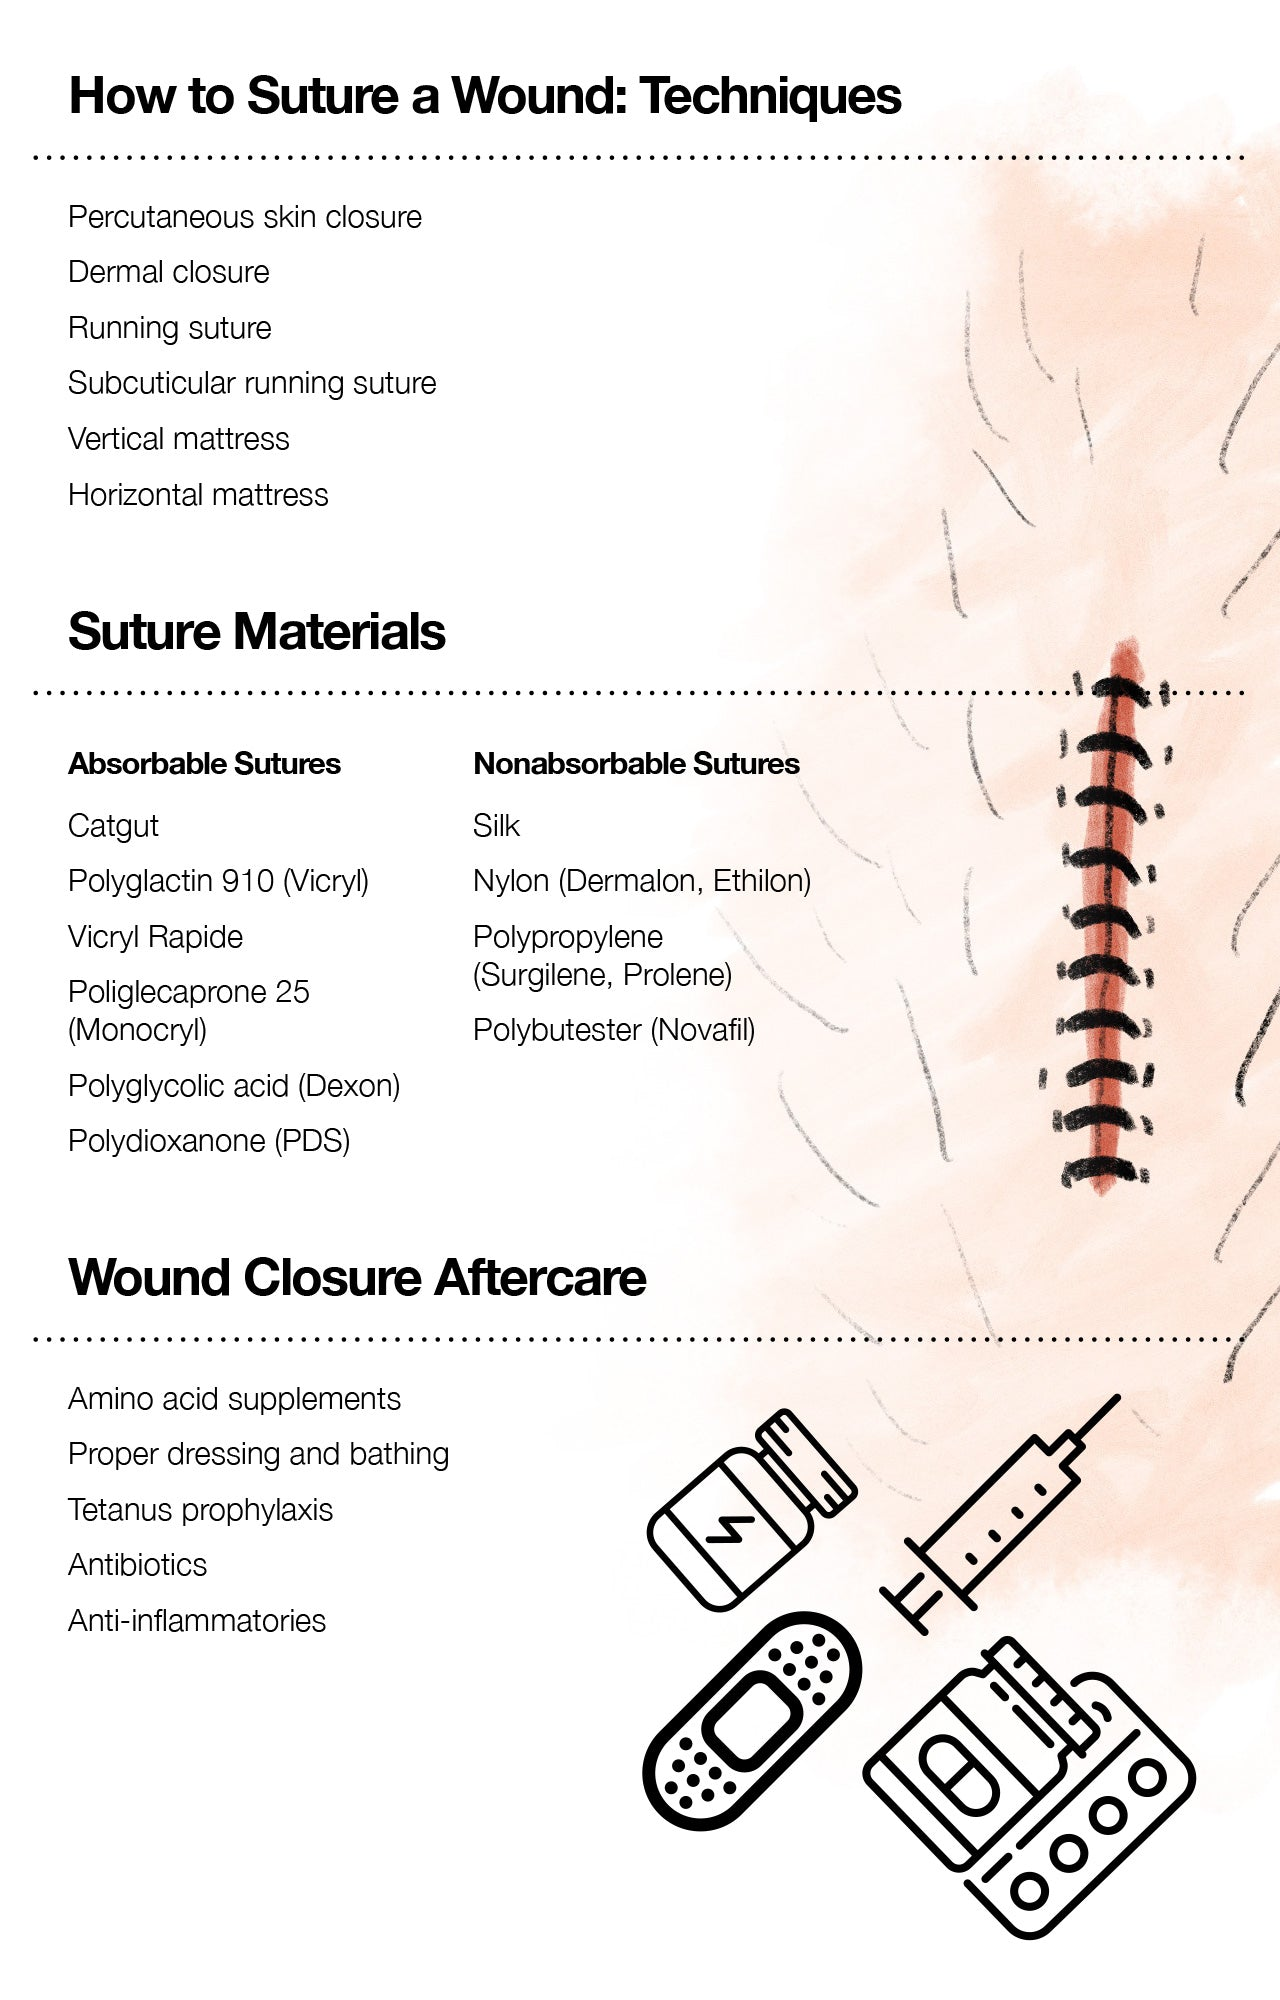 How to Suture a Wound: Techniques